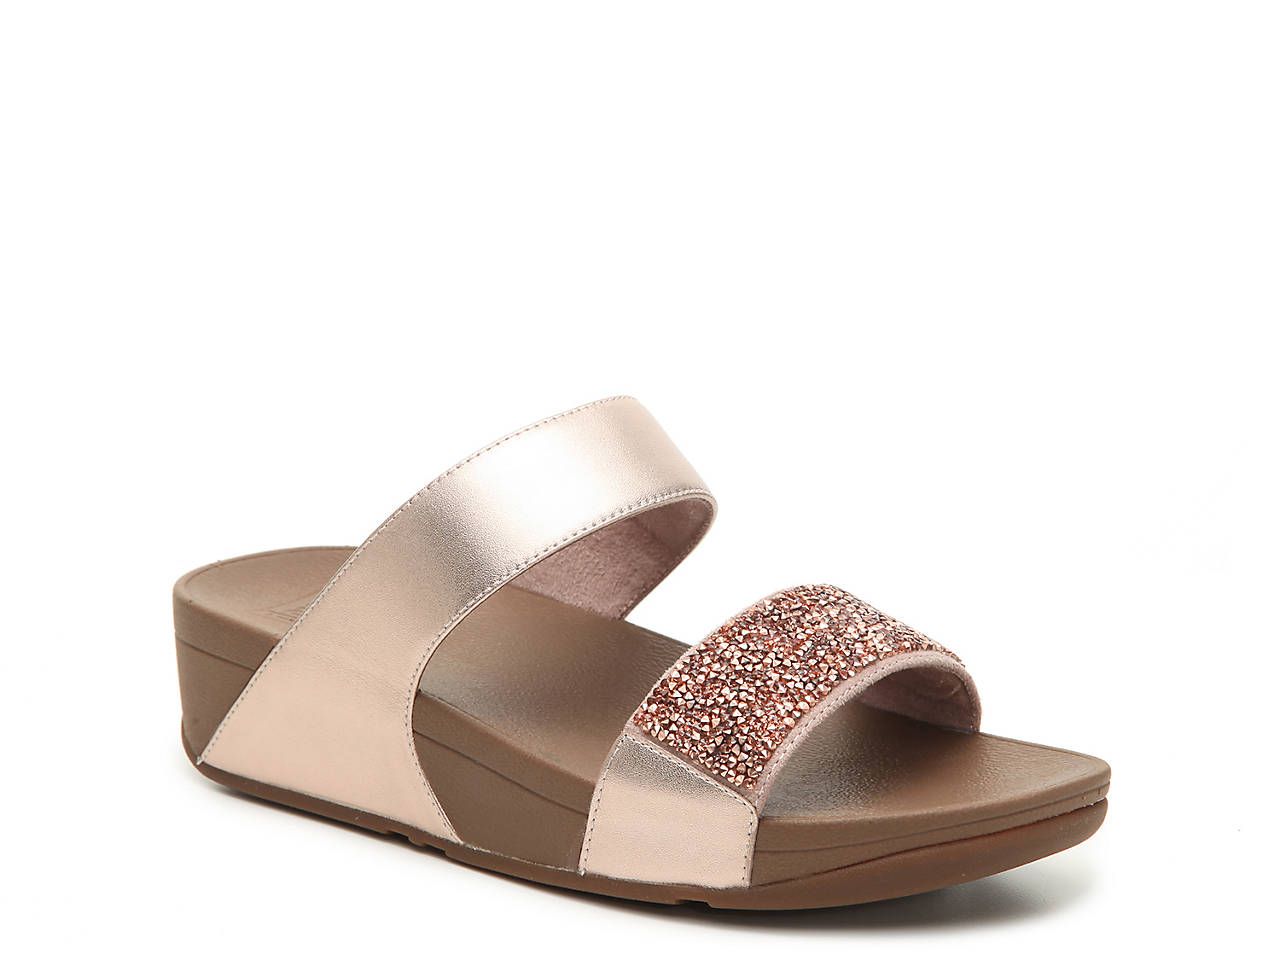 99c6e77e95283b FitFlop Sparkle Crystal Wedge Sandal Women s Shoes